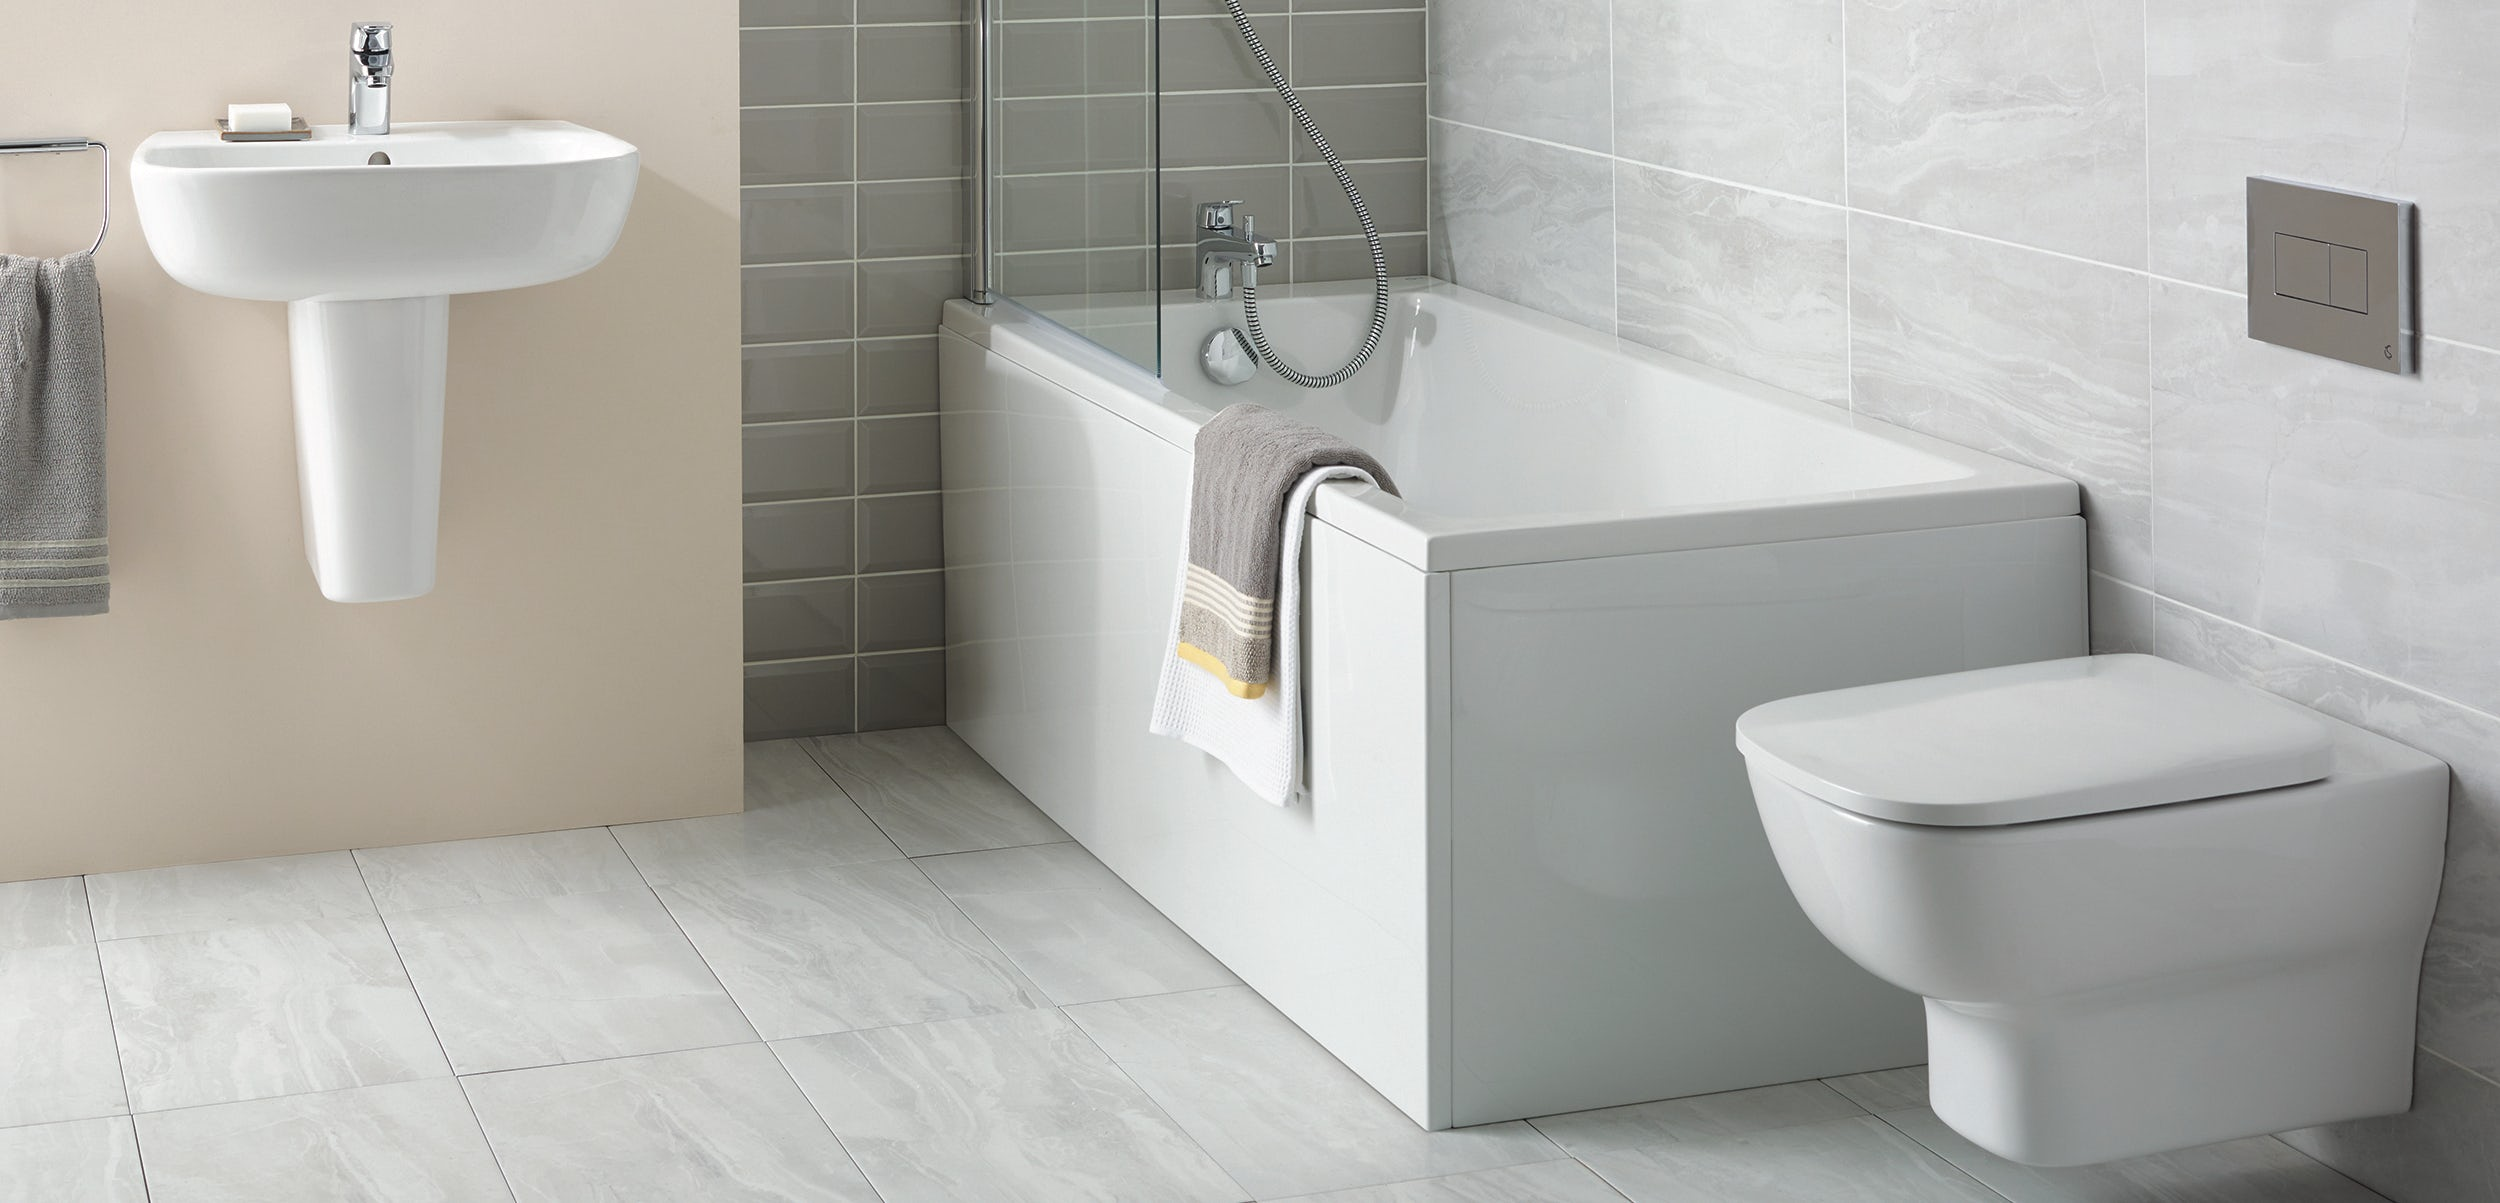 Ideal Standard: What to consider when creating an eco-friendly bathroom